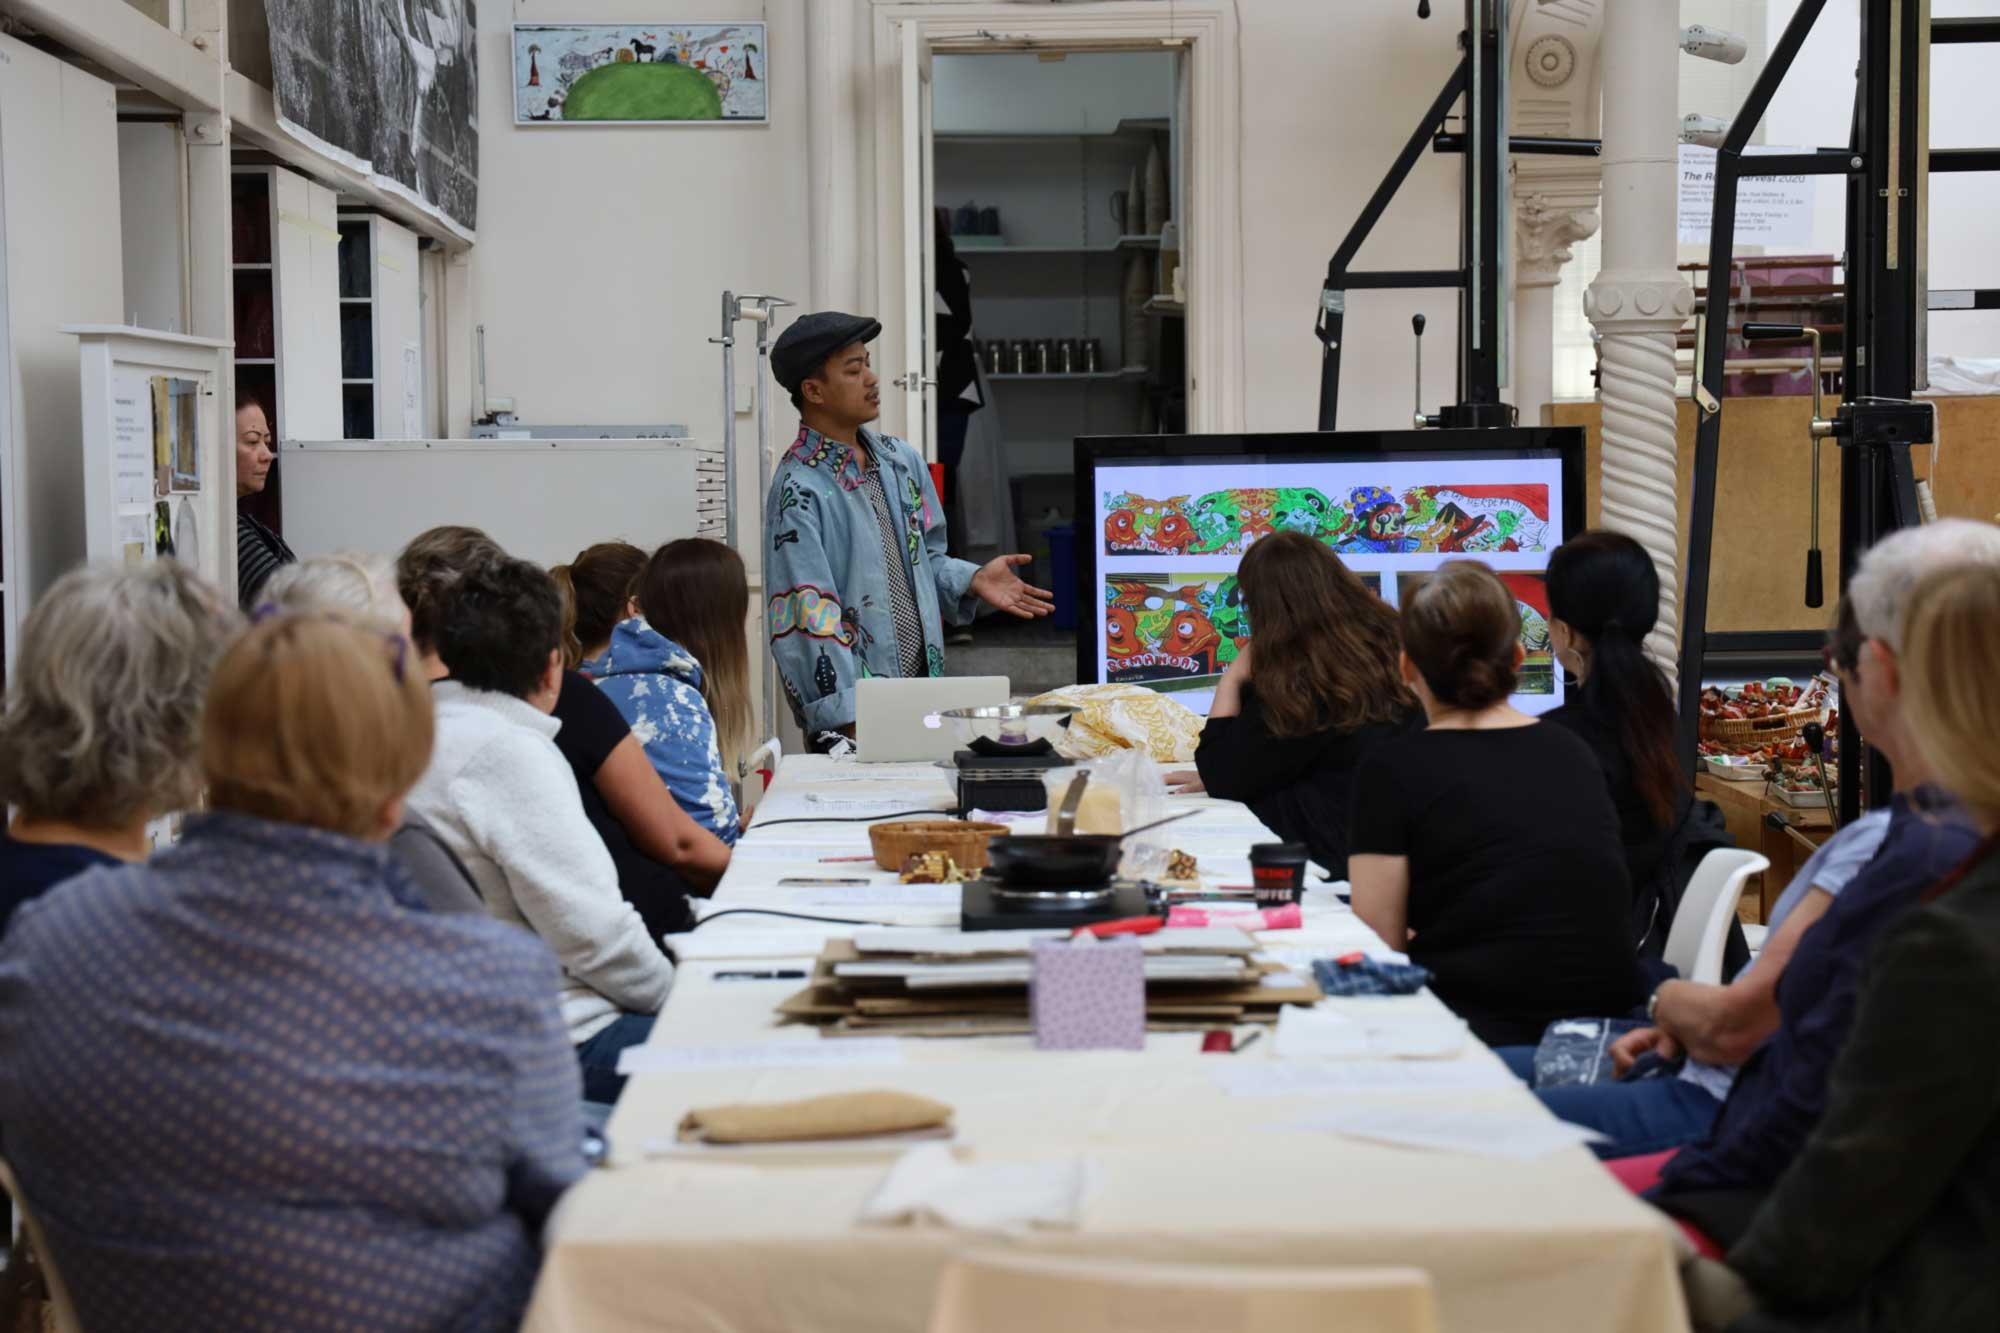 Dias Prabu speaking about his artistic practice to Tulis Batik workshop participants at the ATW. Photo: Dewie Bukit.